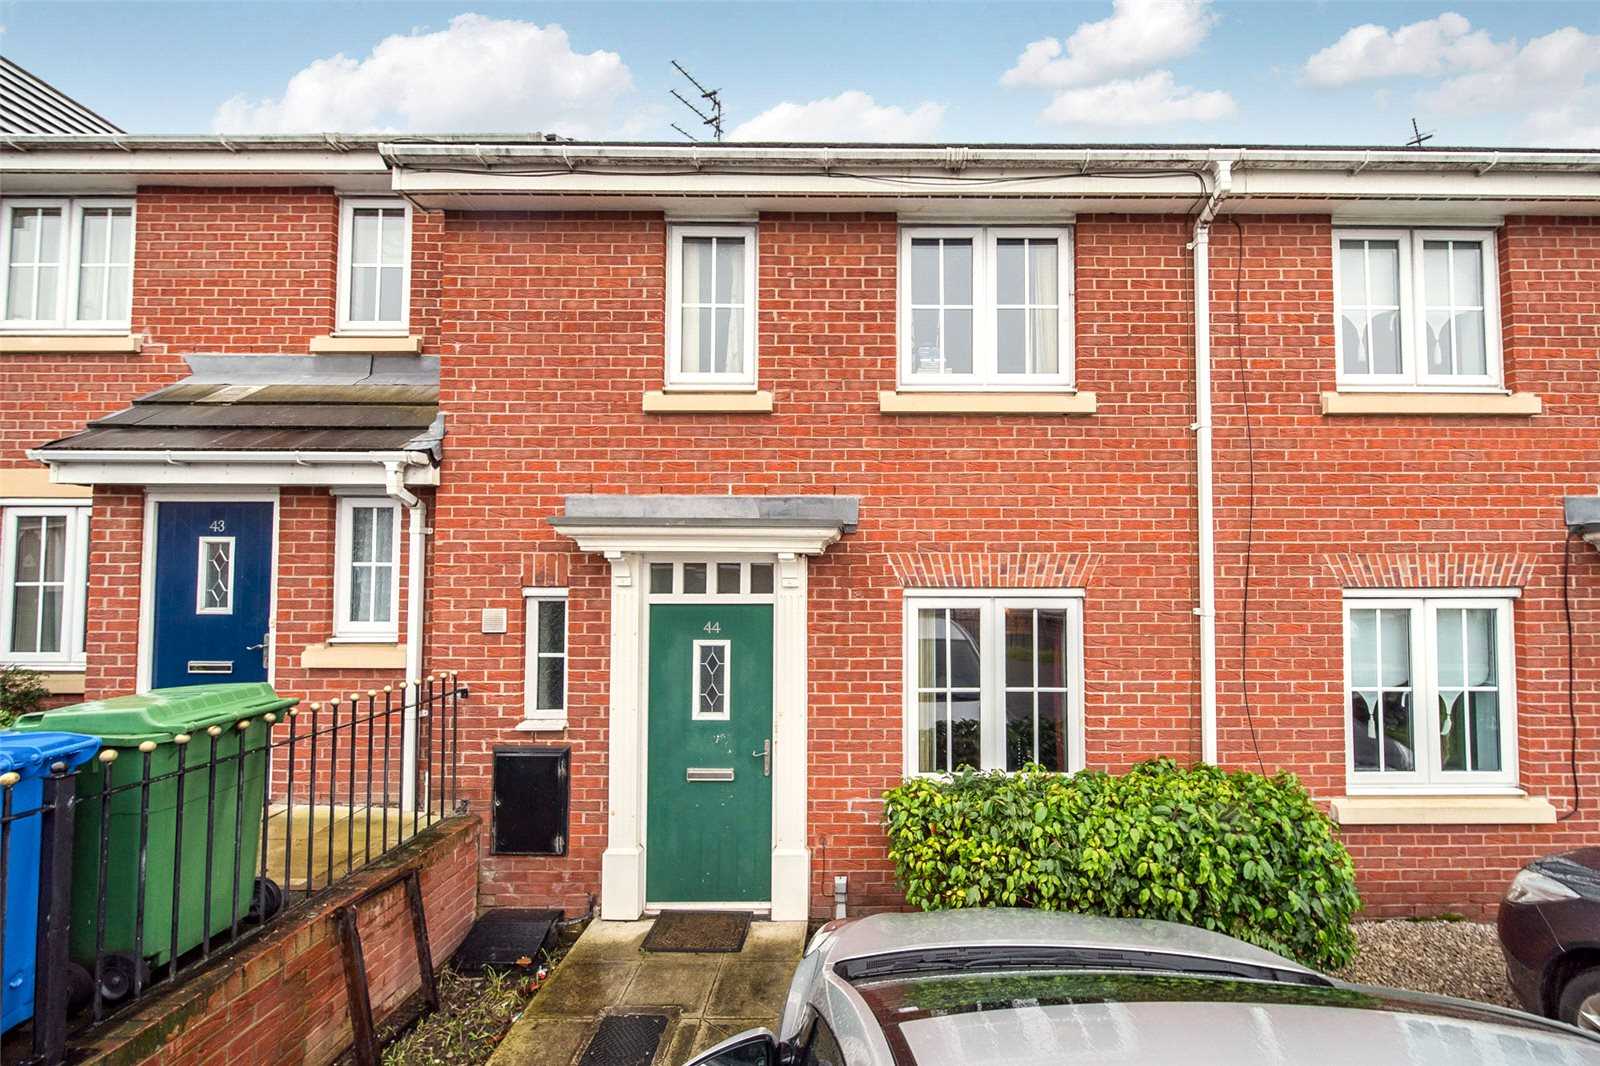 3 Bedrooms Terraced House for sale in Dylan Close, Liverpool, Merseyside, L4